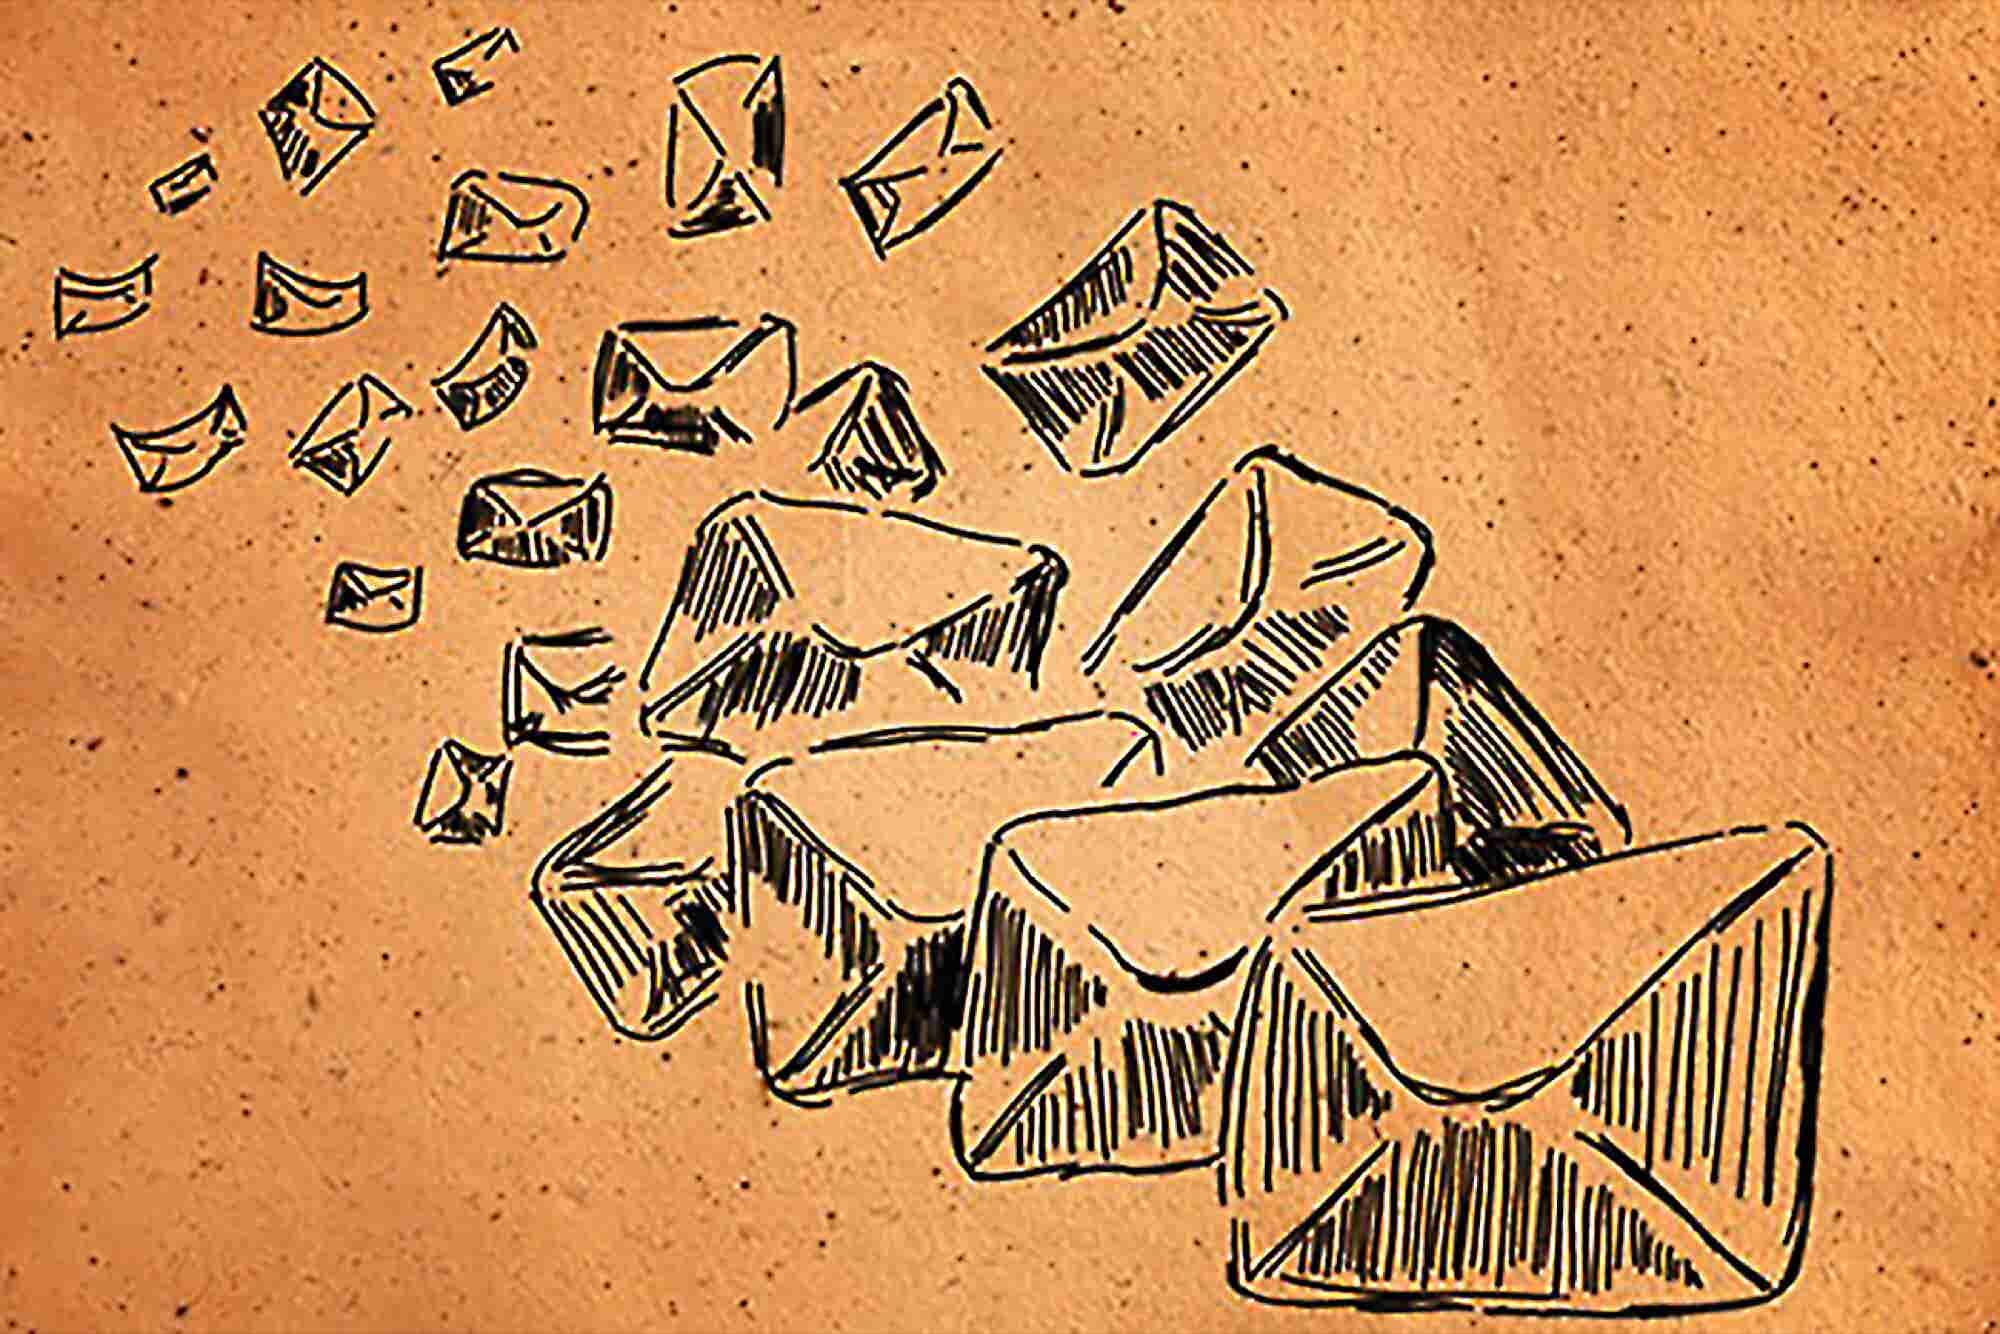 Unleash the Full Power of the Email Auto-Reply